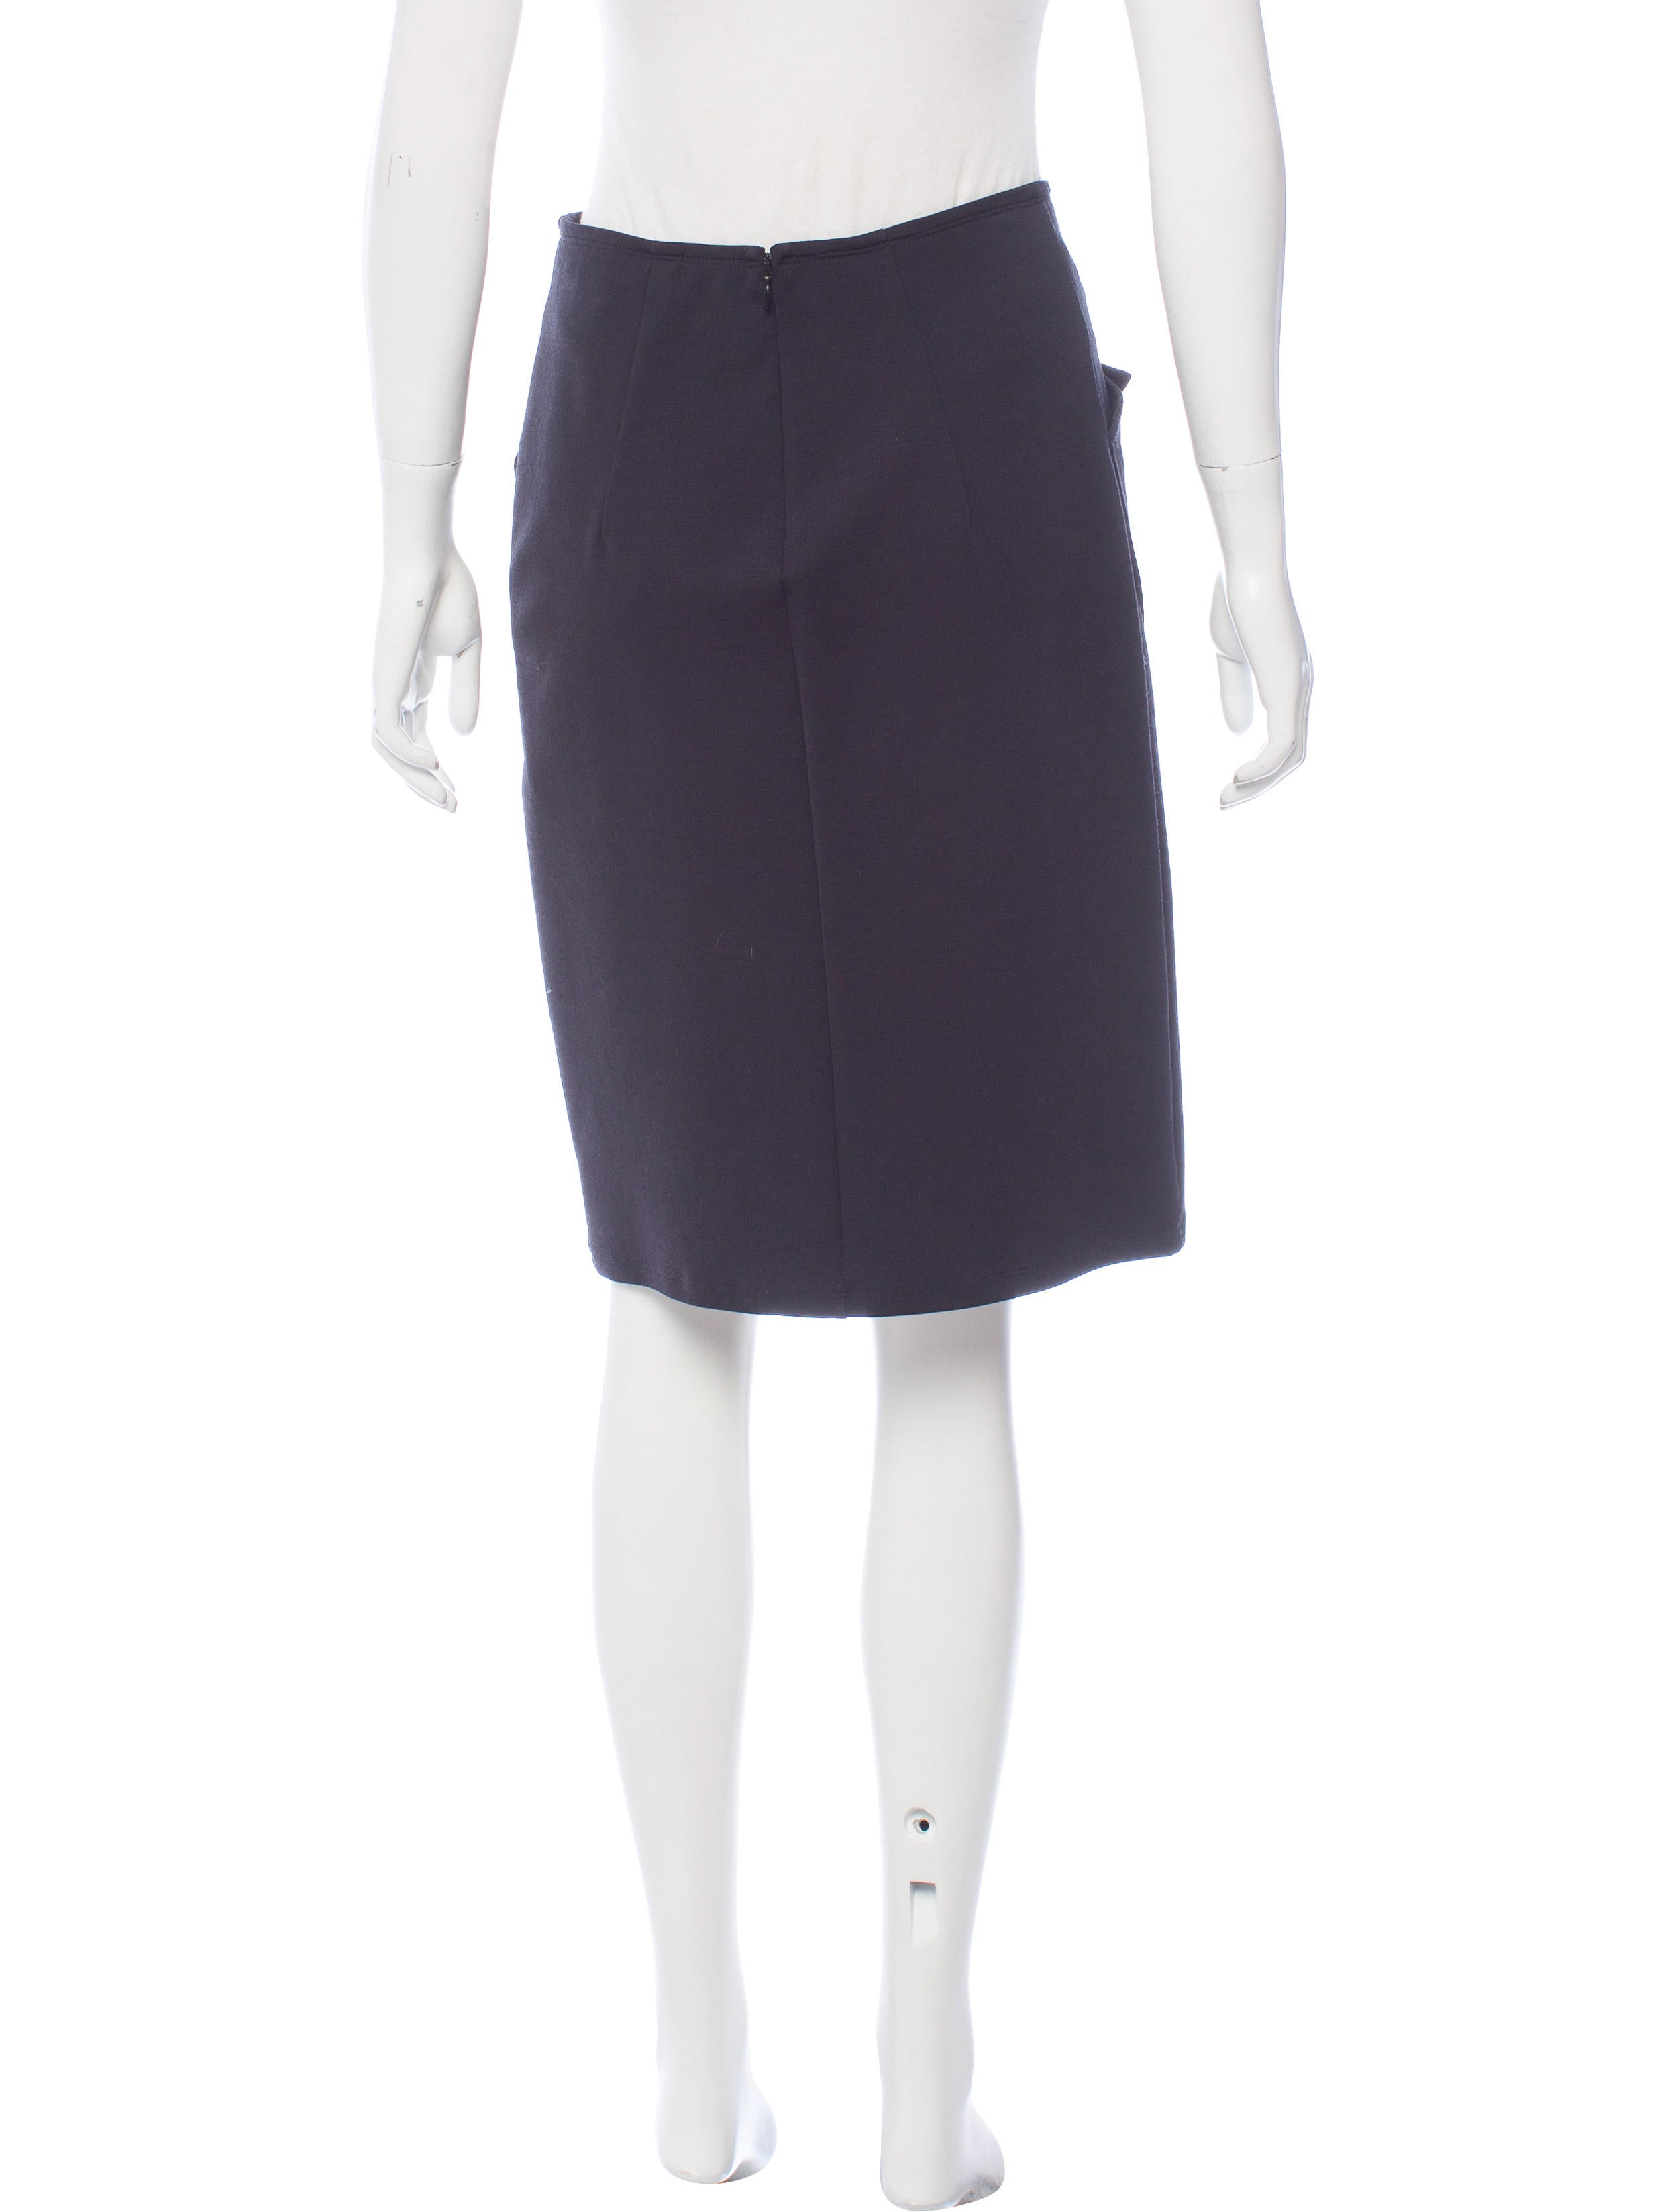 Jil Sander Knee-Length Zip-Up Skirt - Clothing - JIL38516 | The RealReal